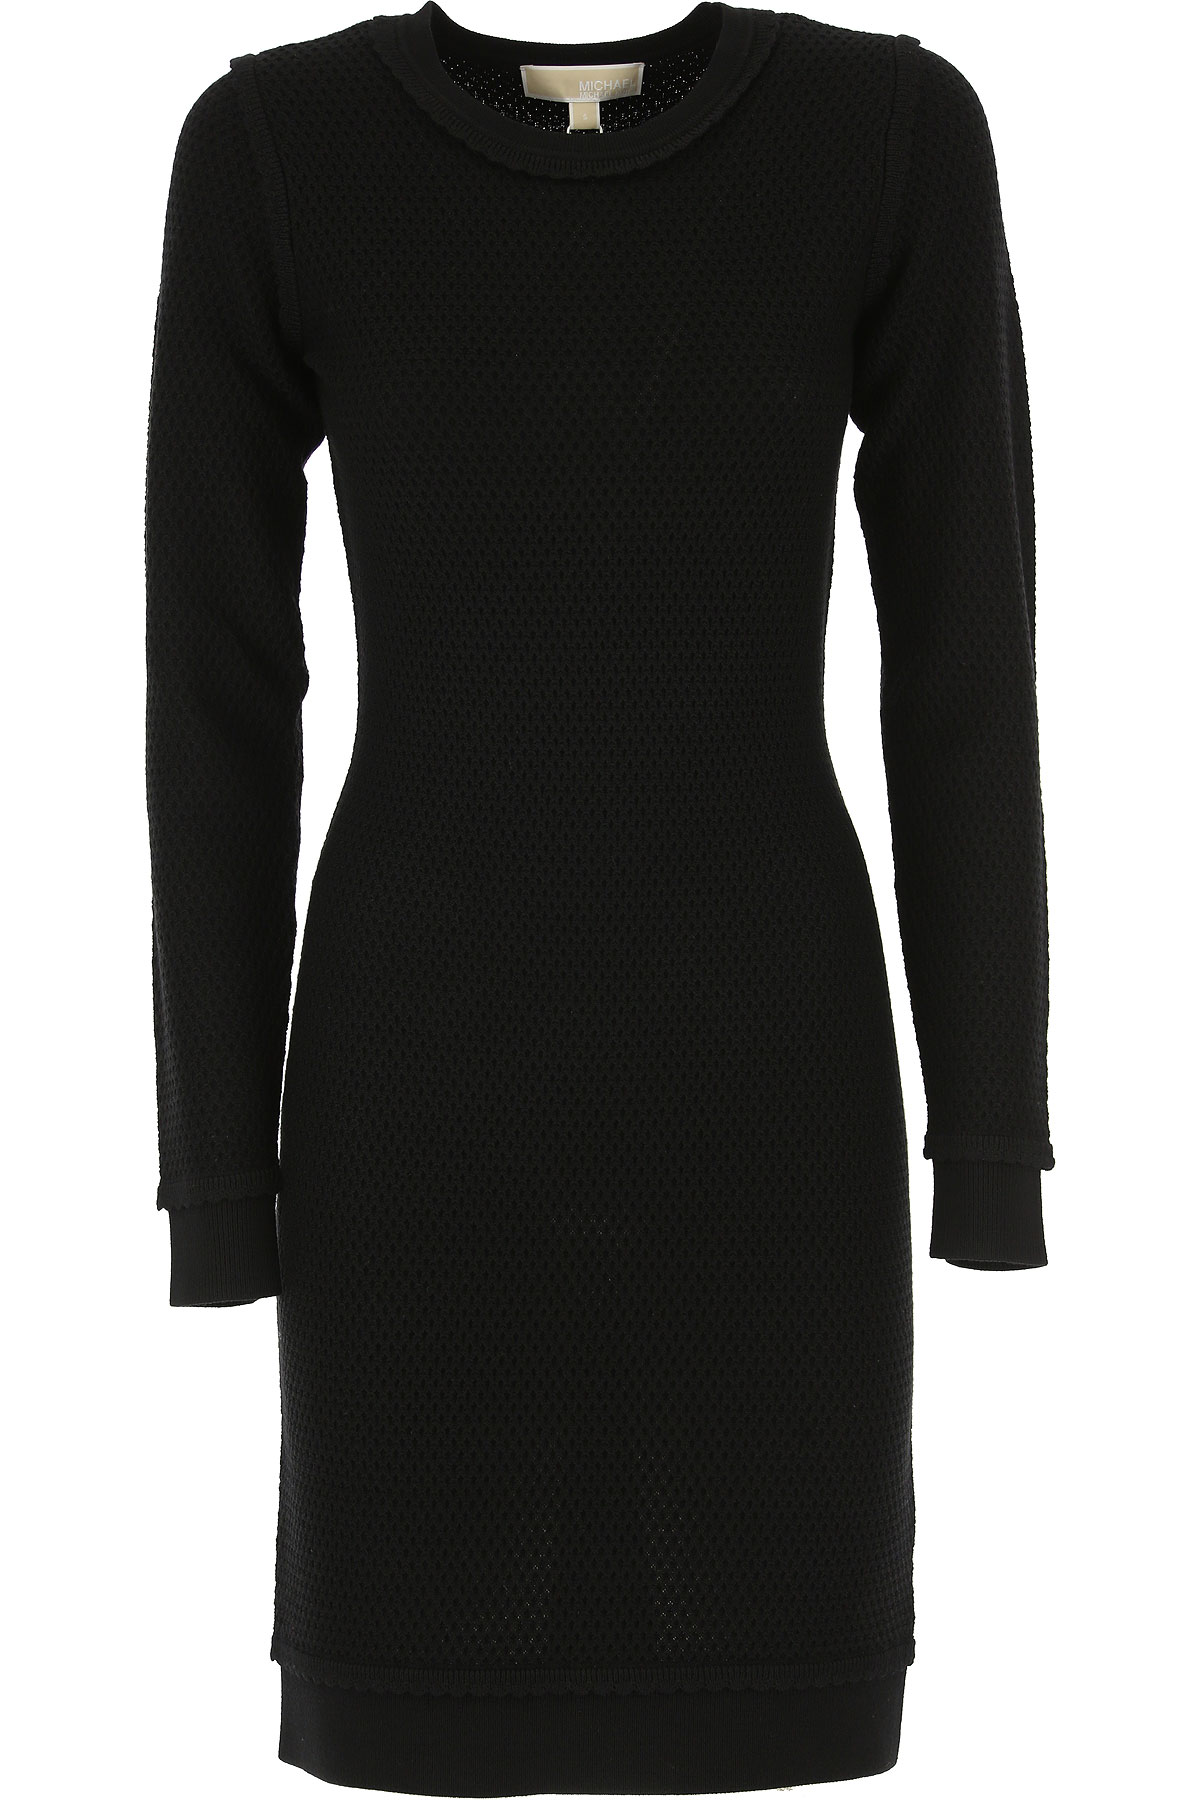 Michael Kors Dress for Women, Evening Cocktail Party On Sale, Black, Merinos Wool, 2017, 2 6